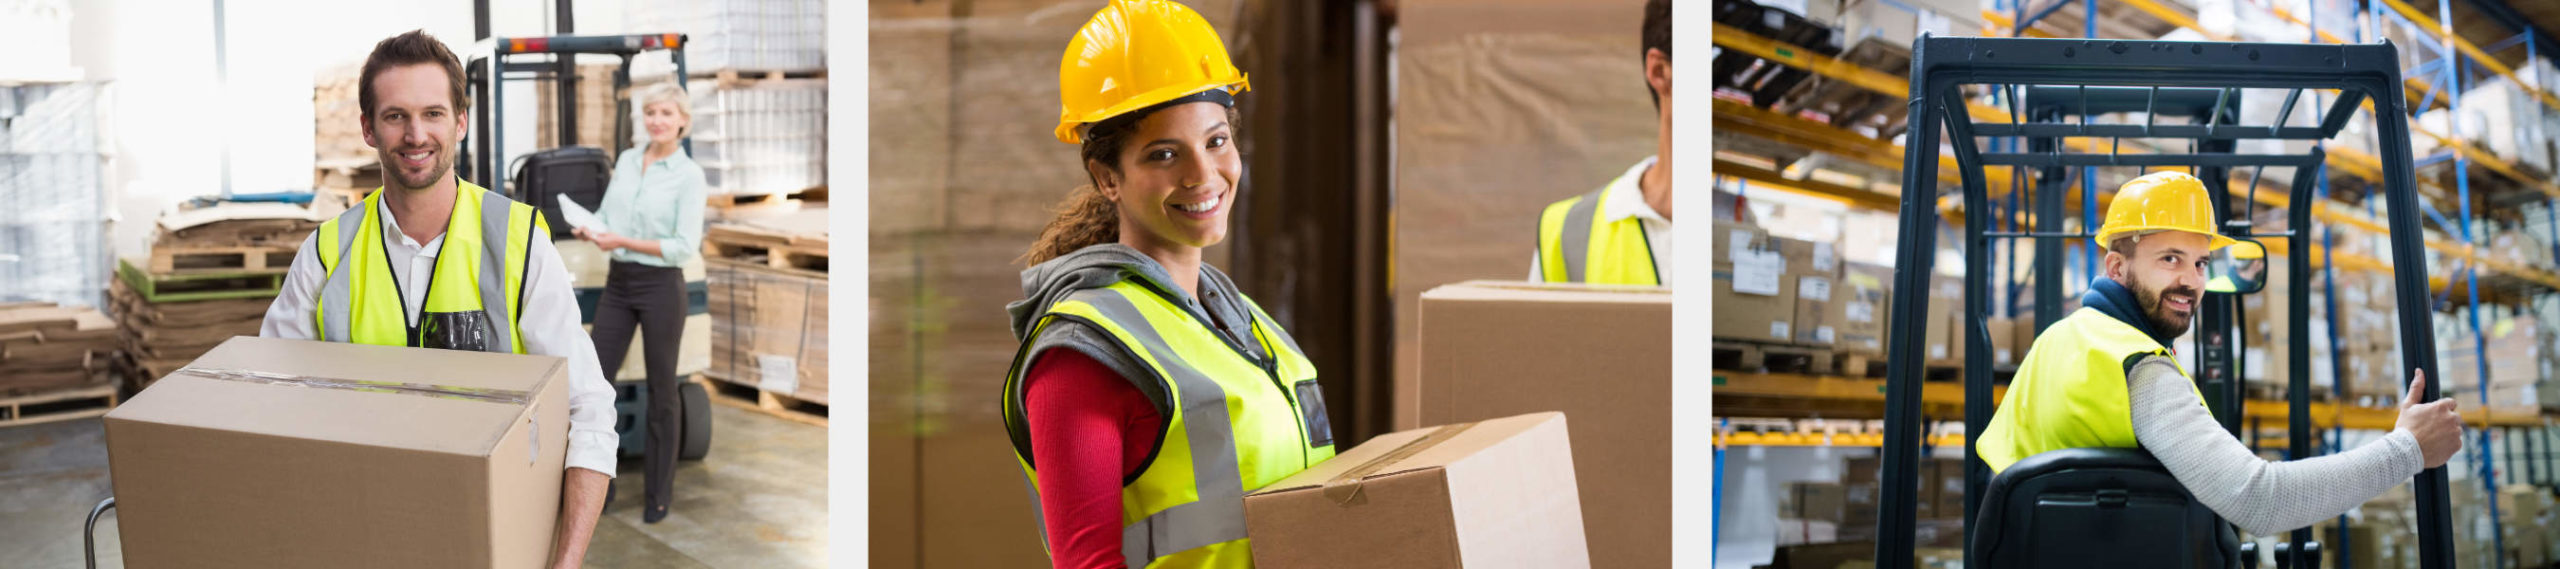 Happy and cool Workers in a warehouse